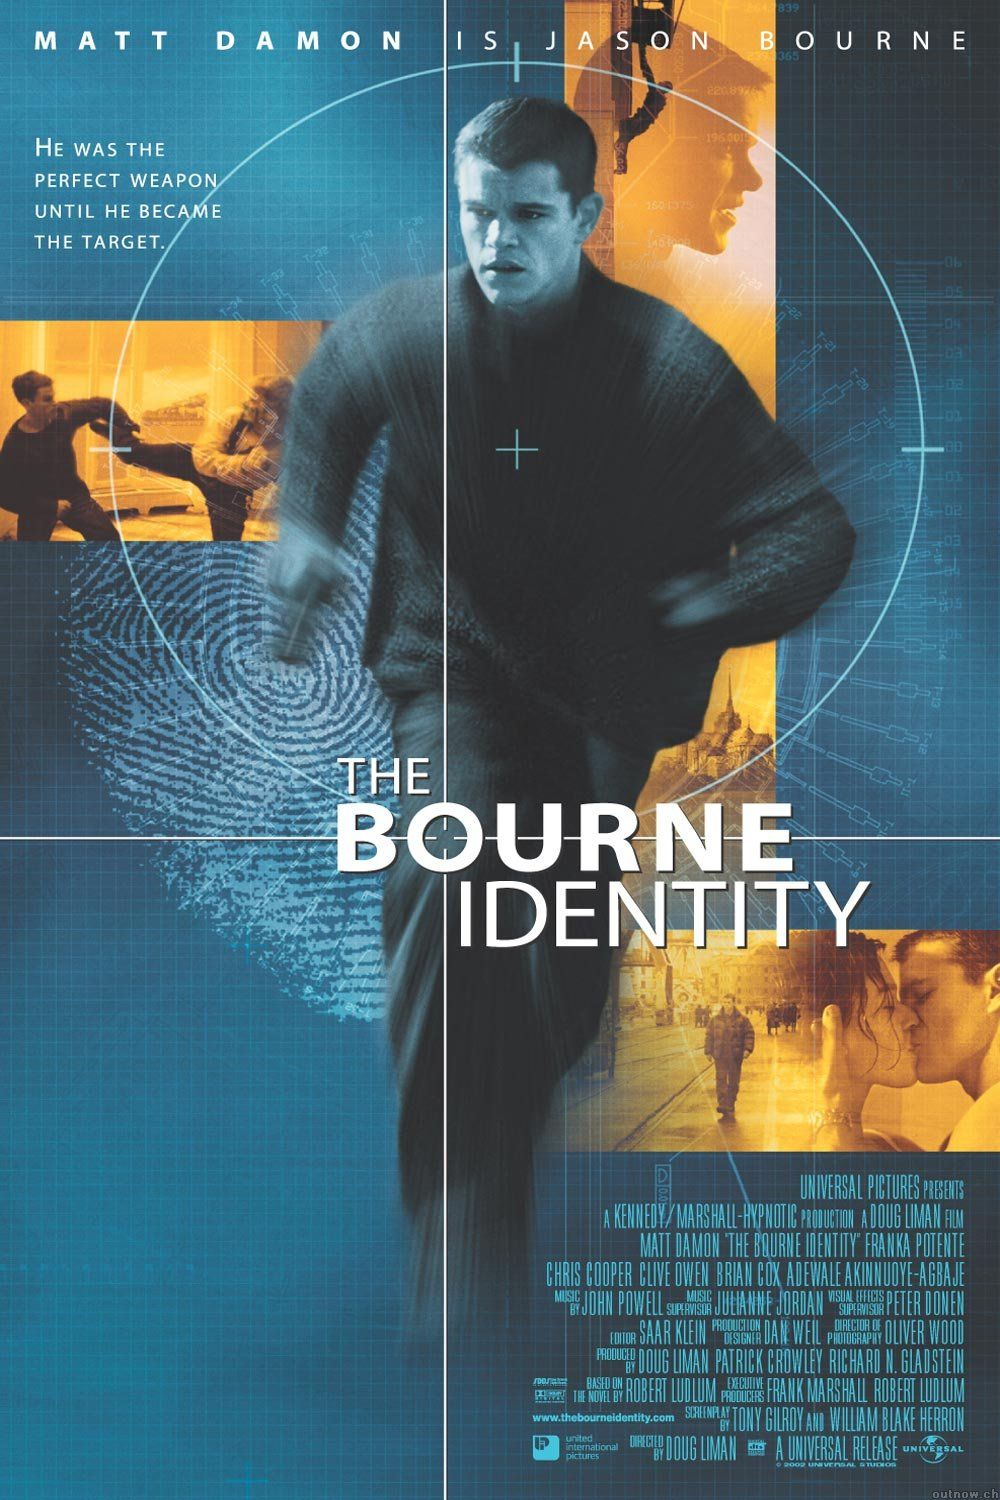 The Bourne Identity Bourne Movies Action Movies The Bourne